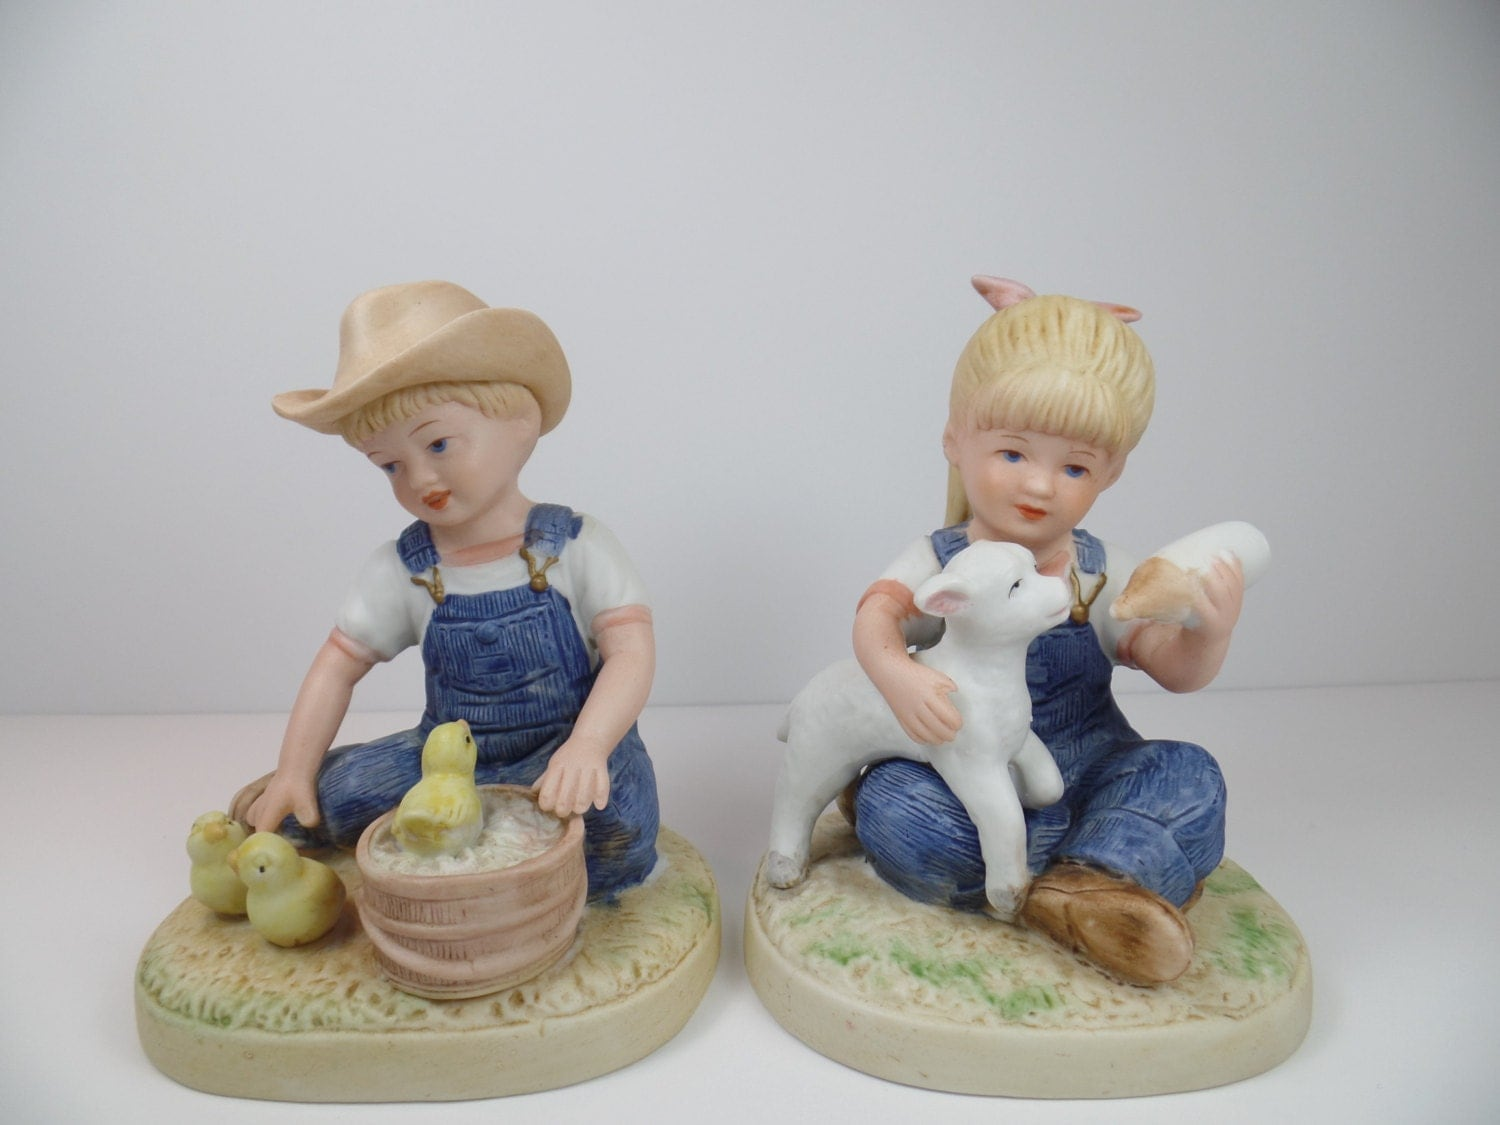 Vintage Homco Denim Days New Beginnings Figurines Homco